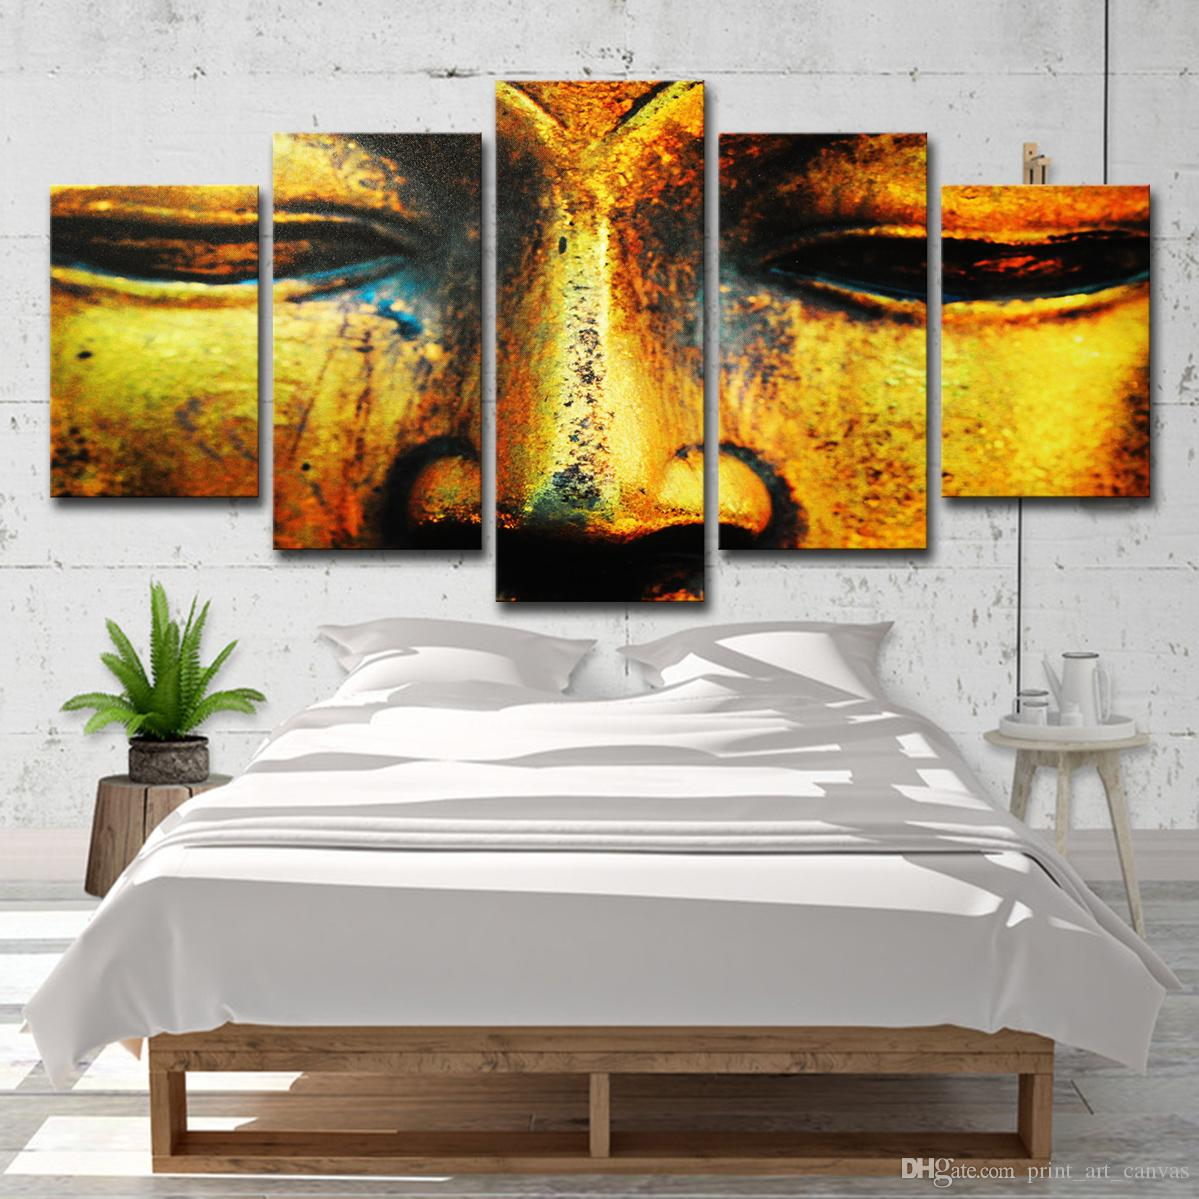 Canvas Wall Art Pictures Home Decoration Poster 5 Pieces Golden Buddha Face HD Printed Painting Modern For Living Room